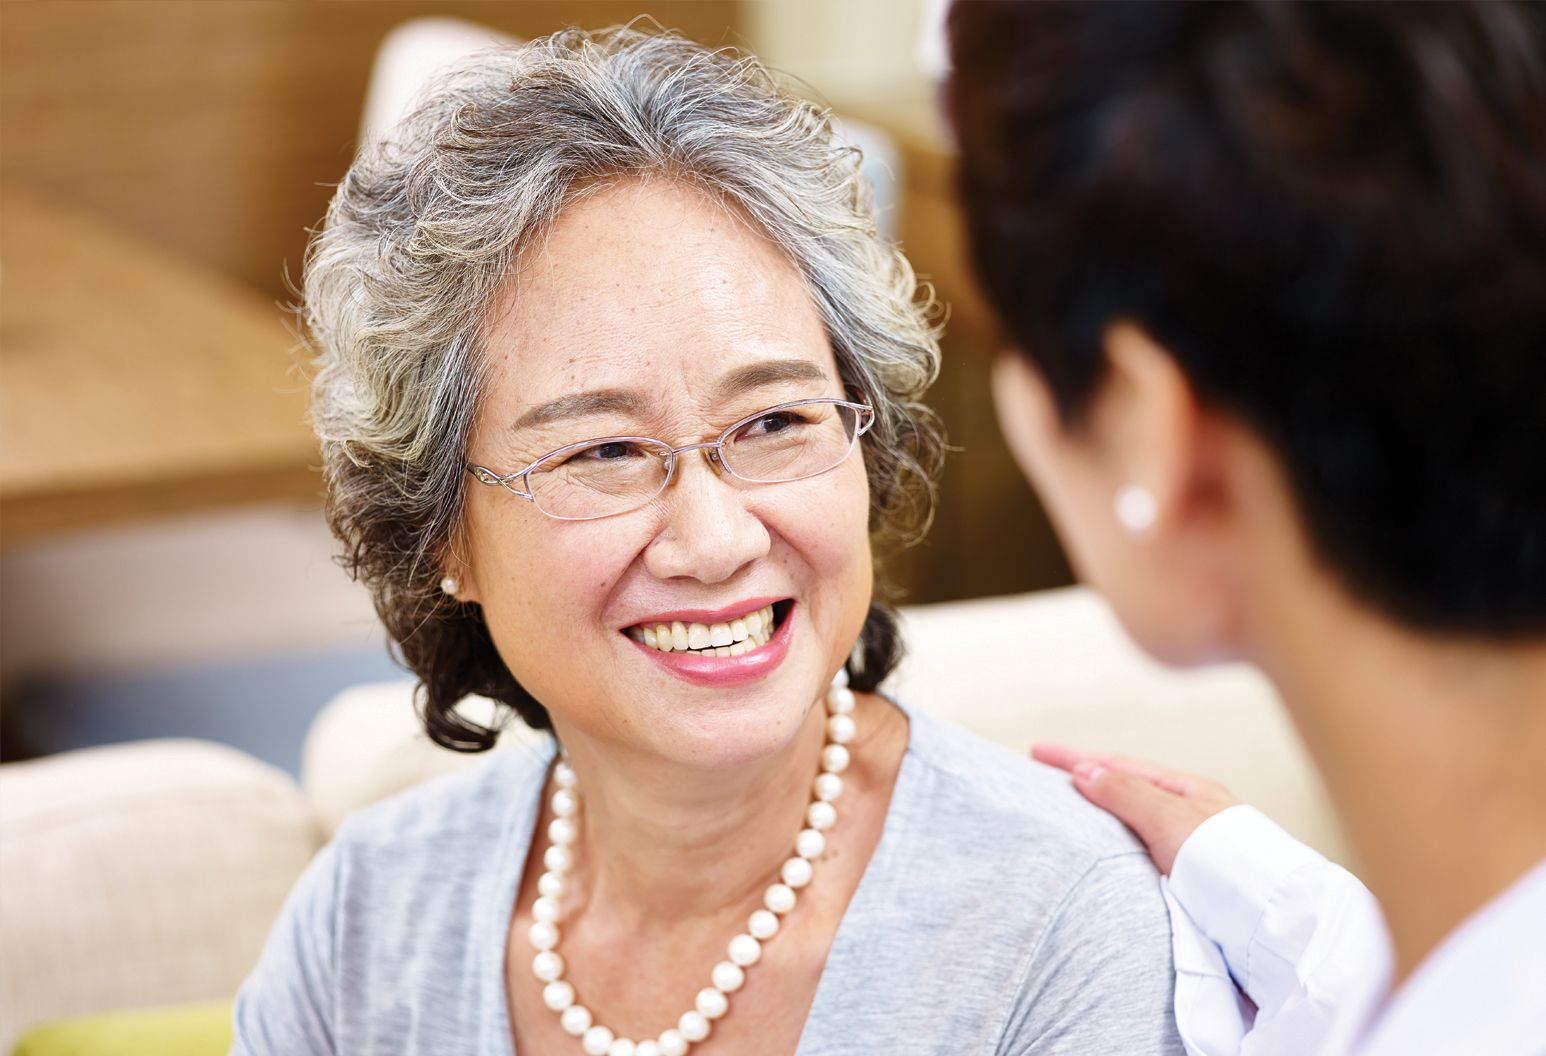 An elderly lady wearing glasses smiles as a hand is placed on her shoulder.